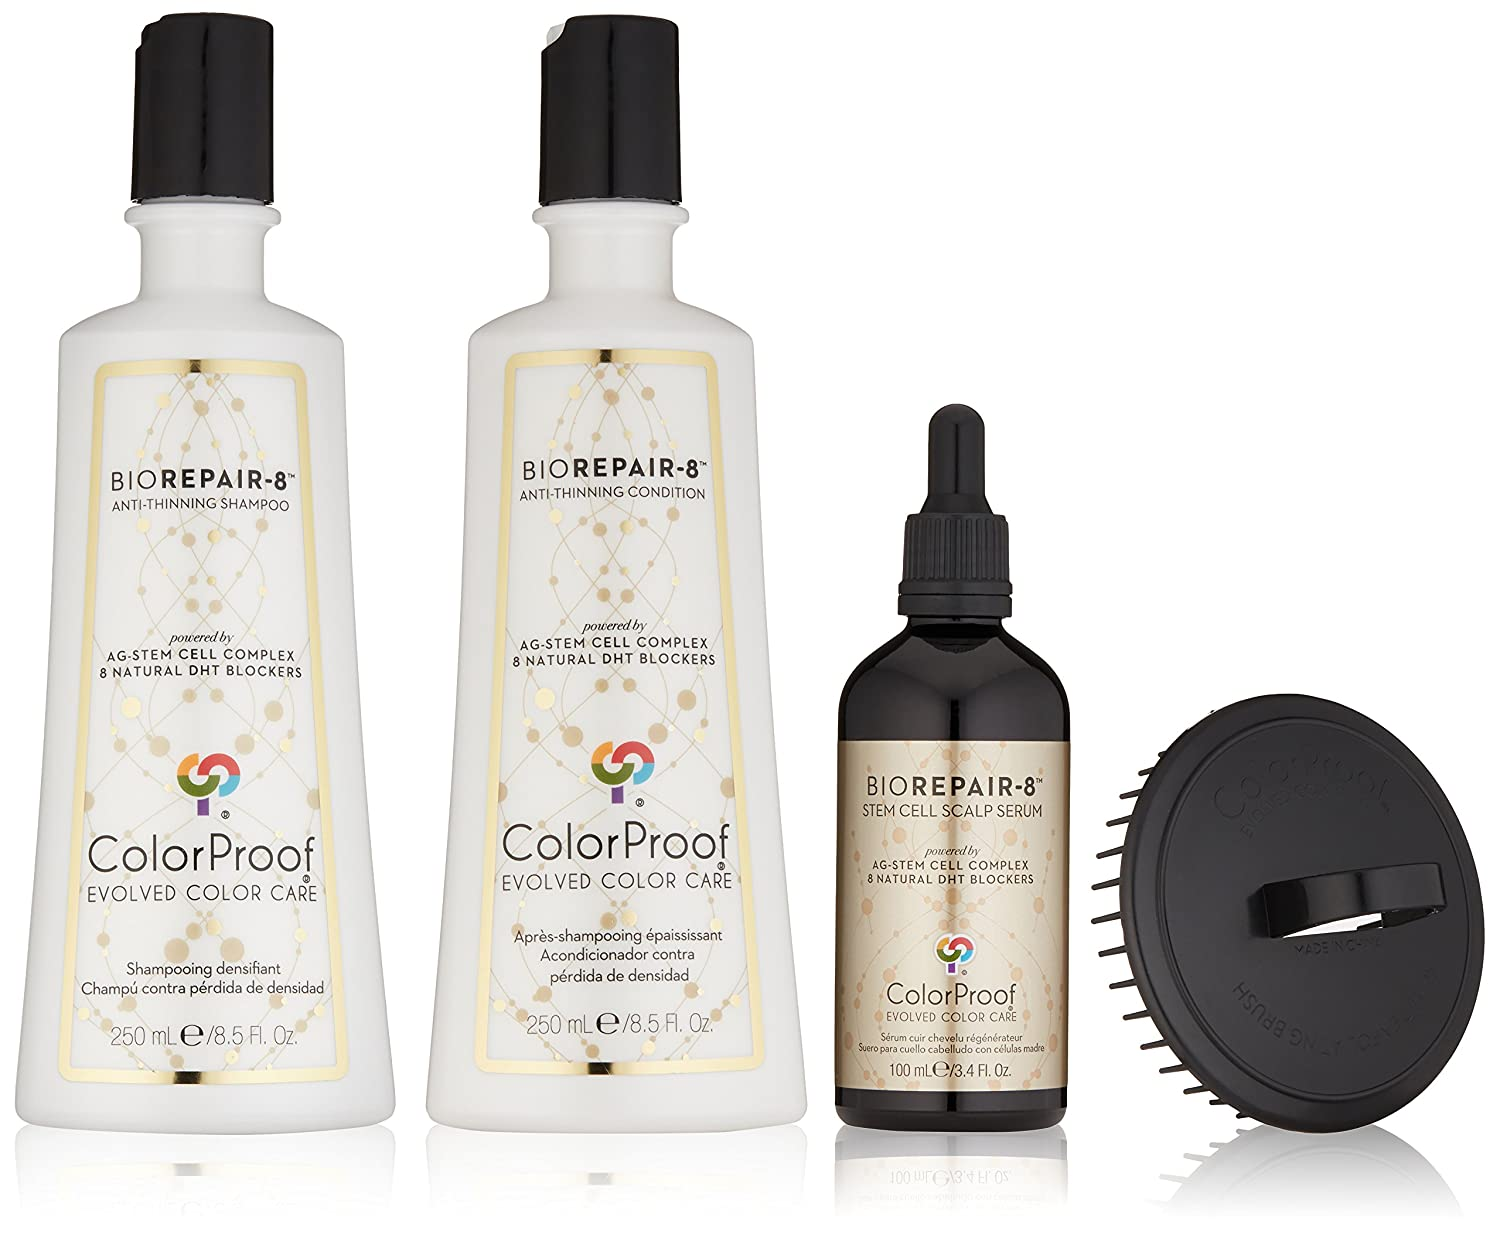 Hair Innovative ideas: anti-aging hair products images